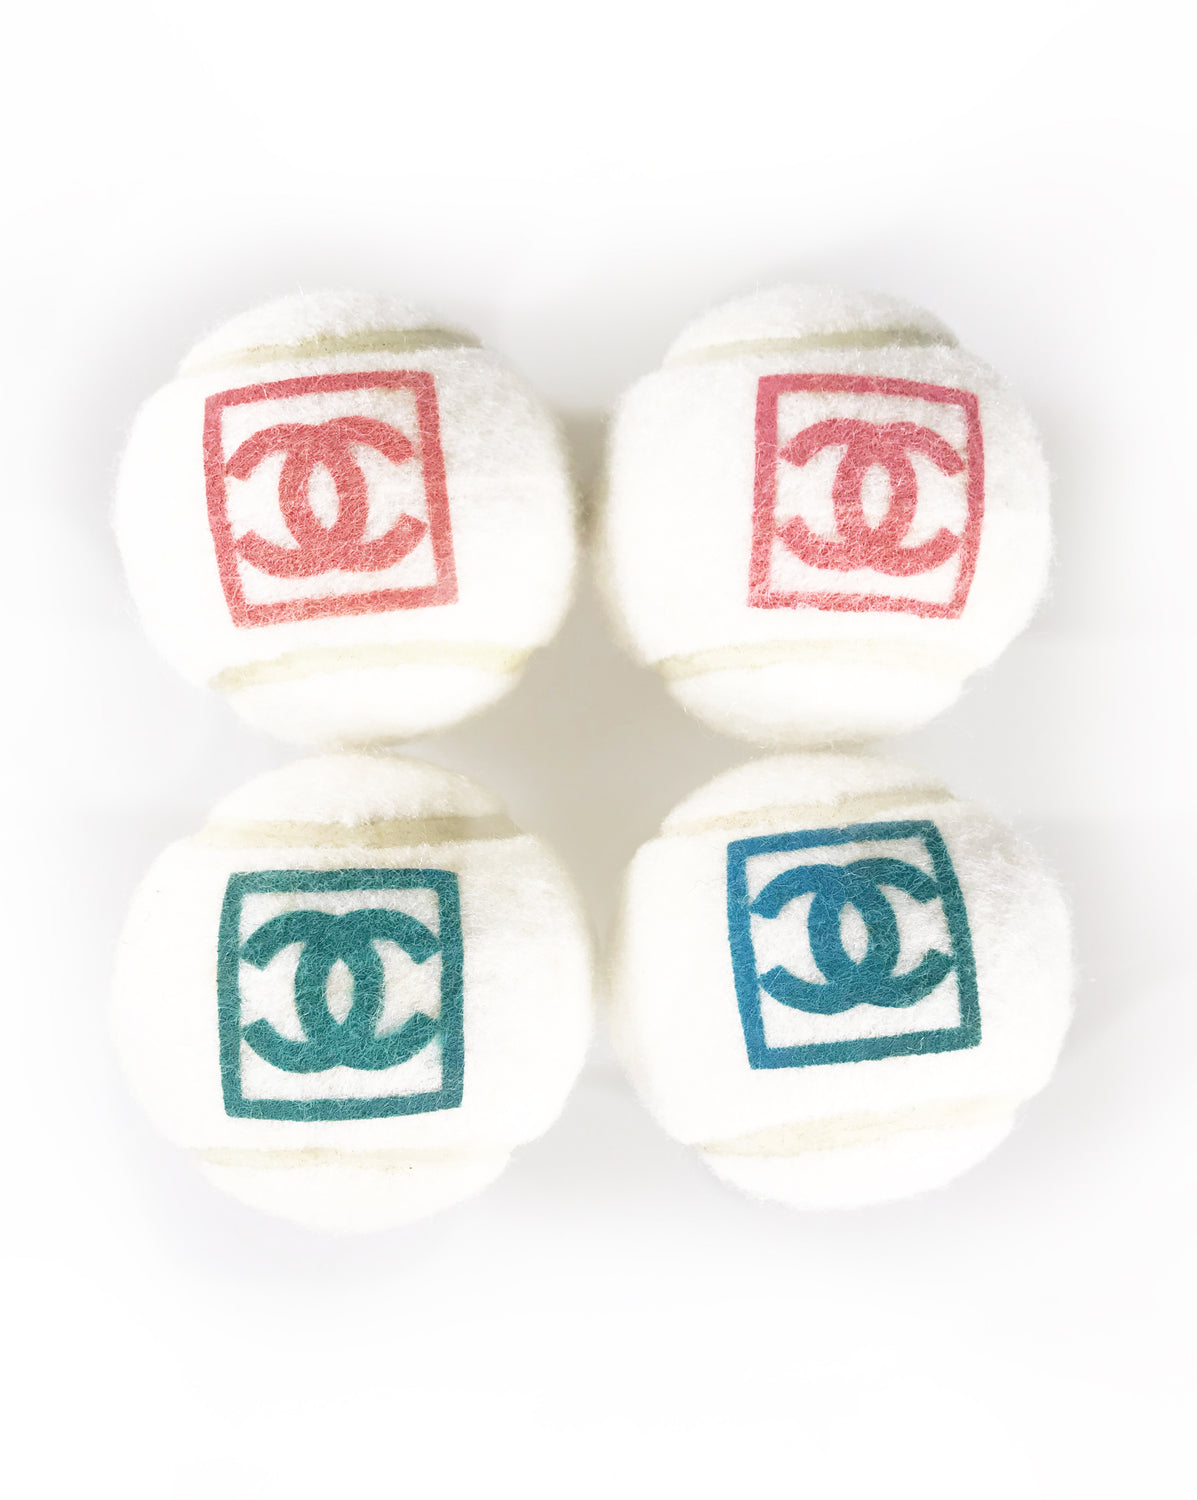 Fruit Vintage Chanel tennis ball set - a rare and important Chanel collectors accessory. It features a 4 Chanel tennis balls (2 pink and 2 blue) in a navy zipper accessory pouch with logo embroidery.